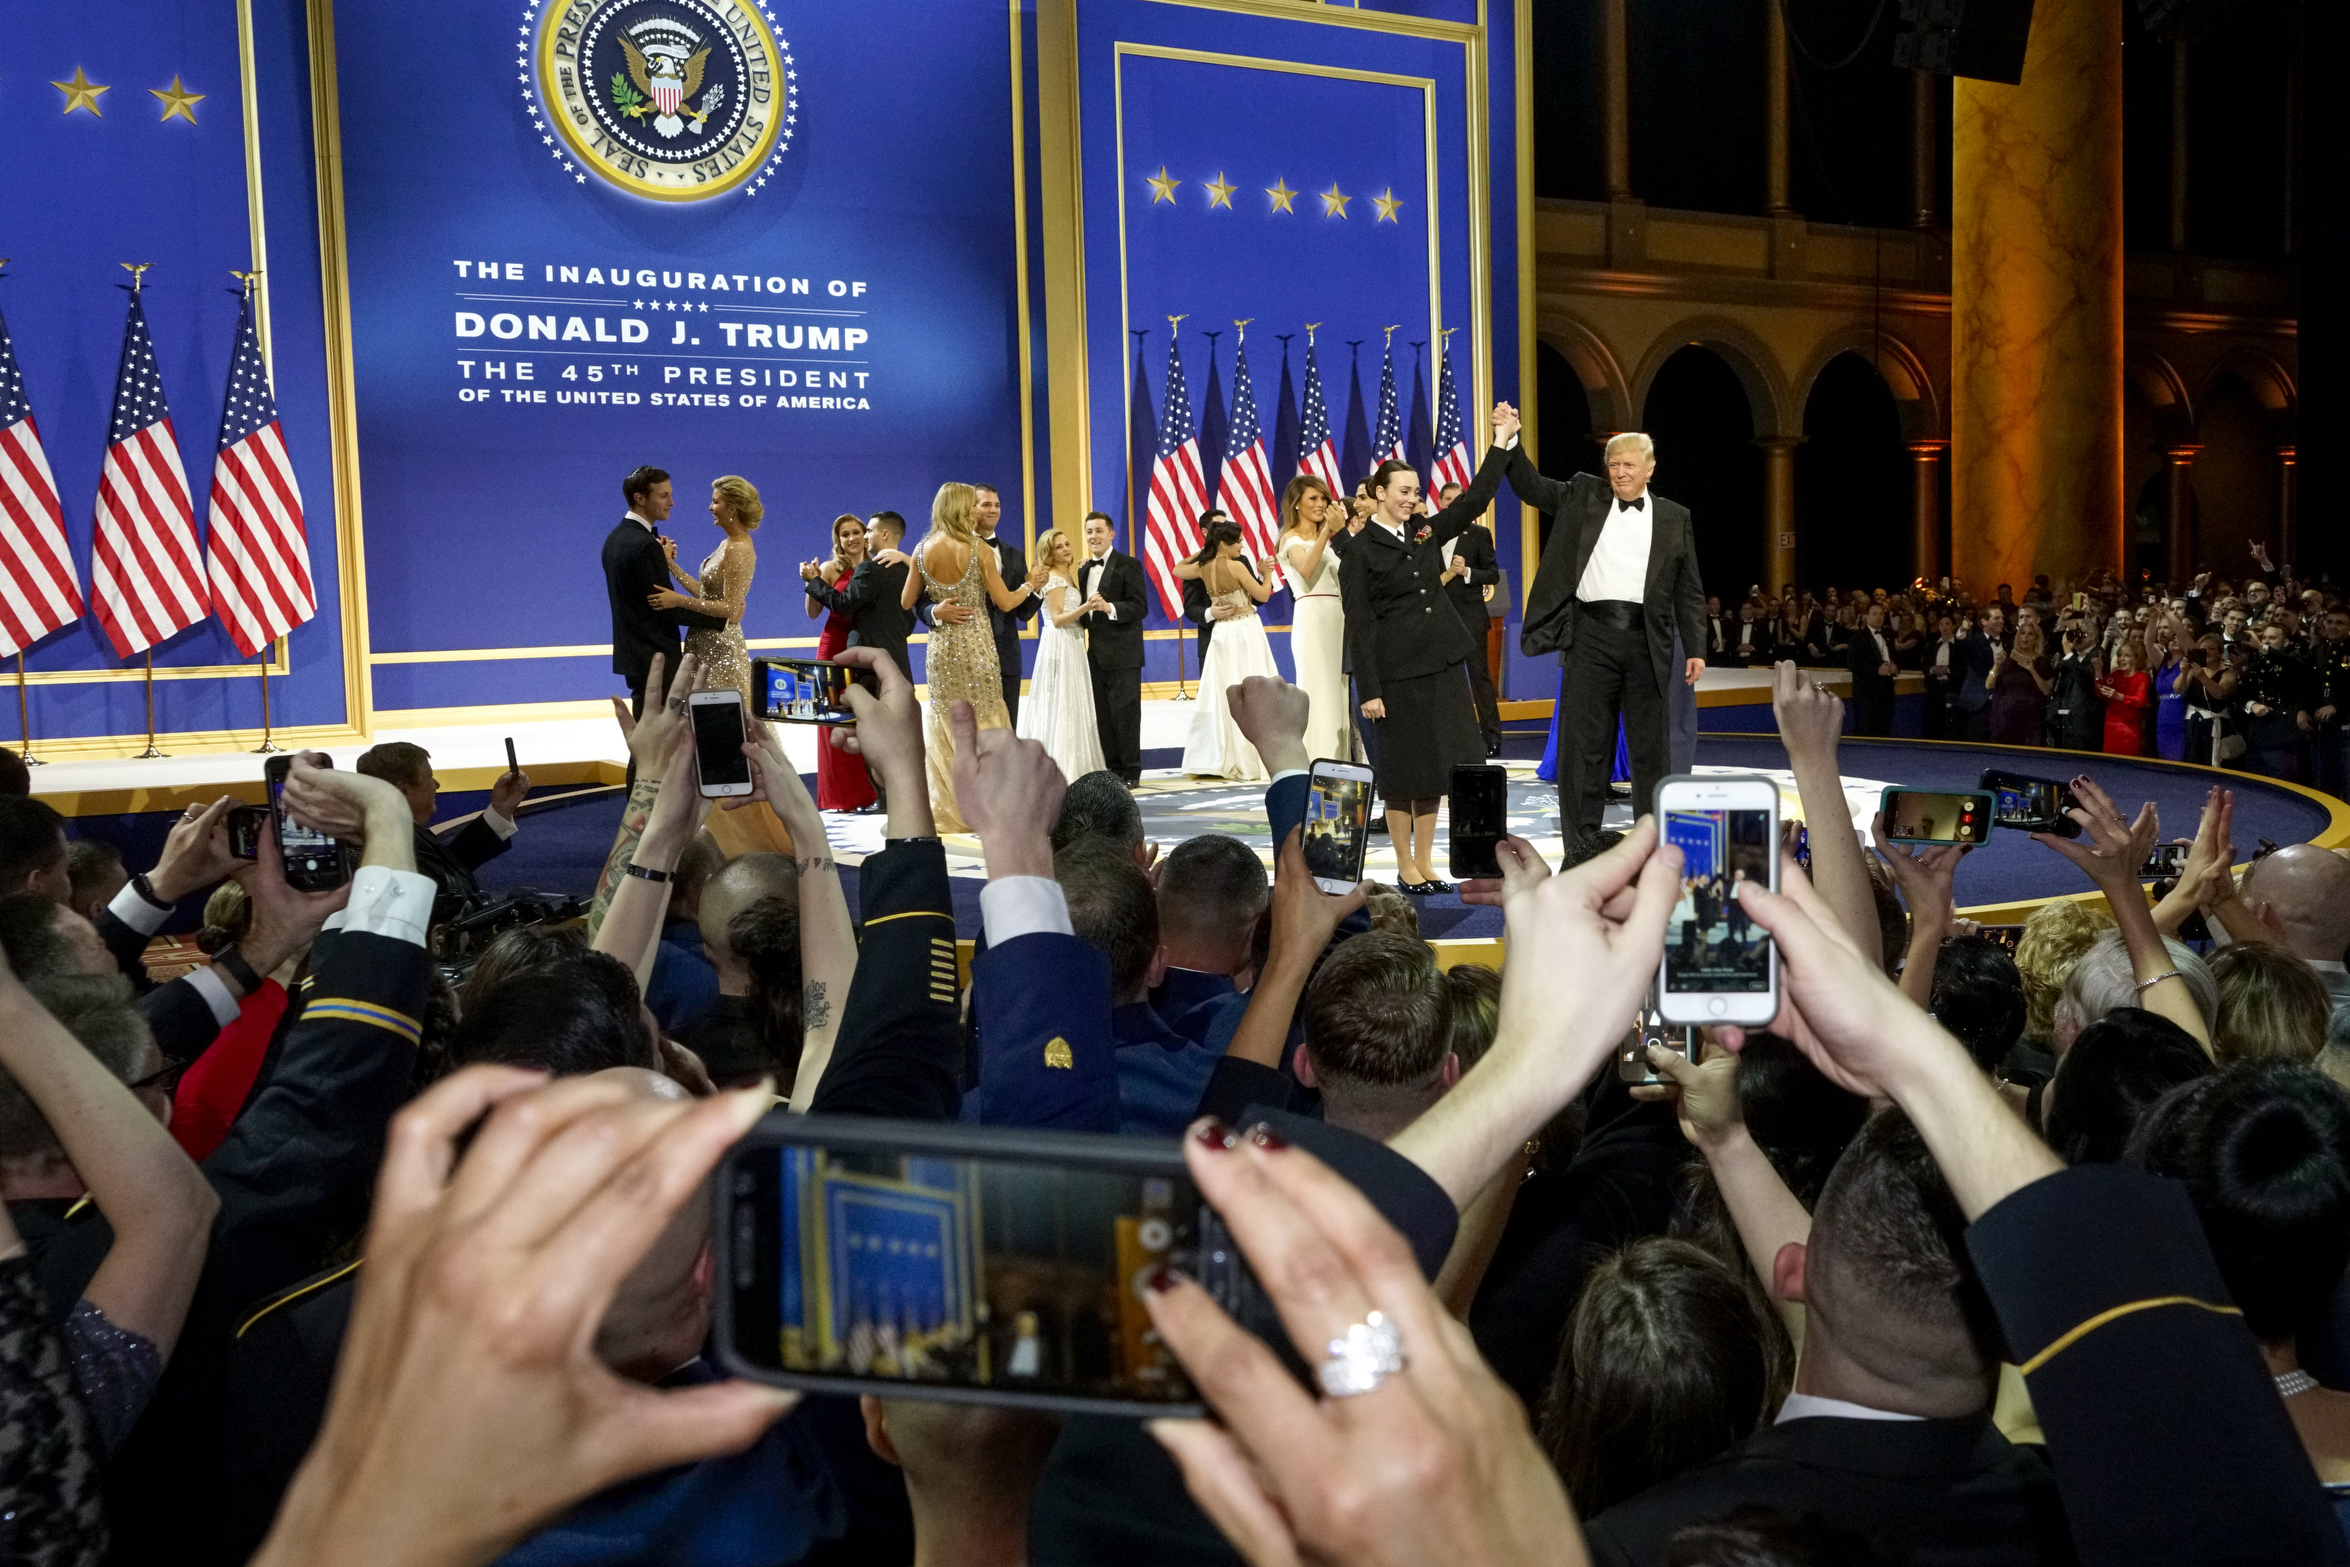 U.S. President Donald Trump applauds members of the armed services during the Armed Services Inaugural Ball in Washington, D.C., on Friday, Jan. 20, 2017.